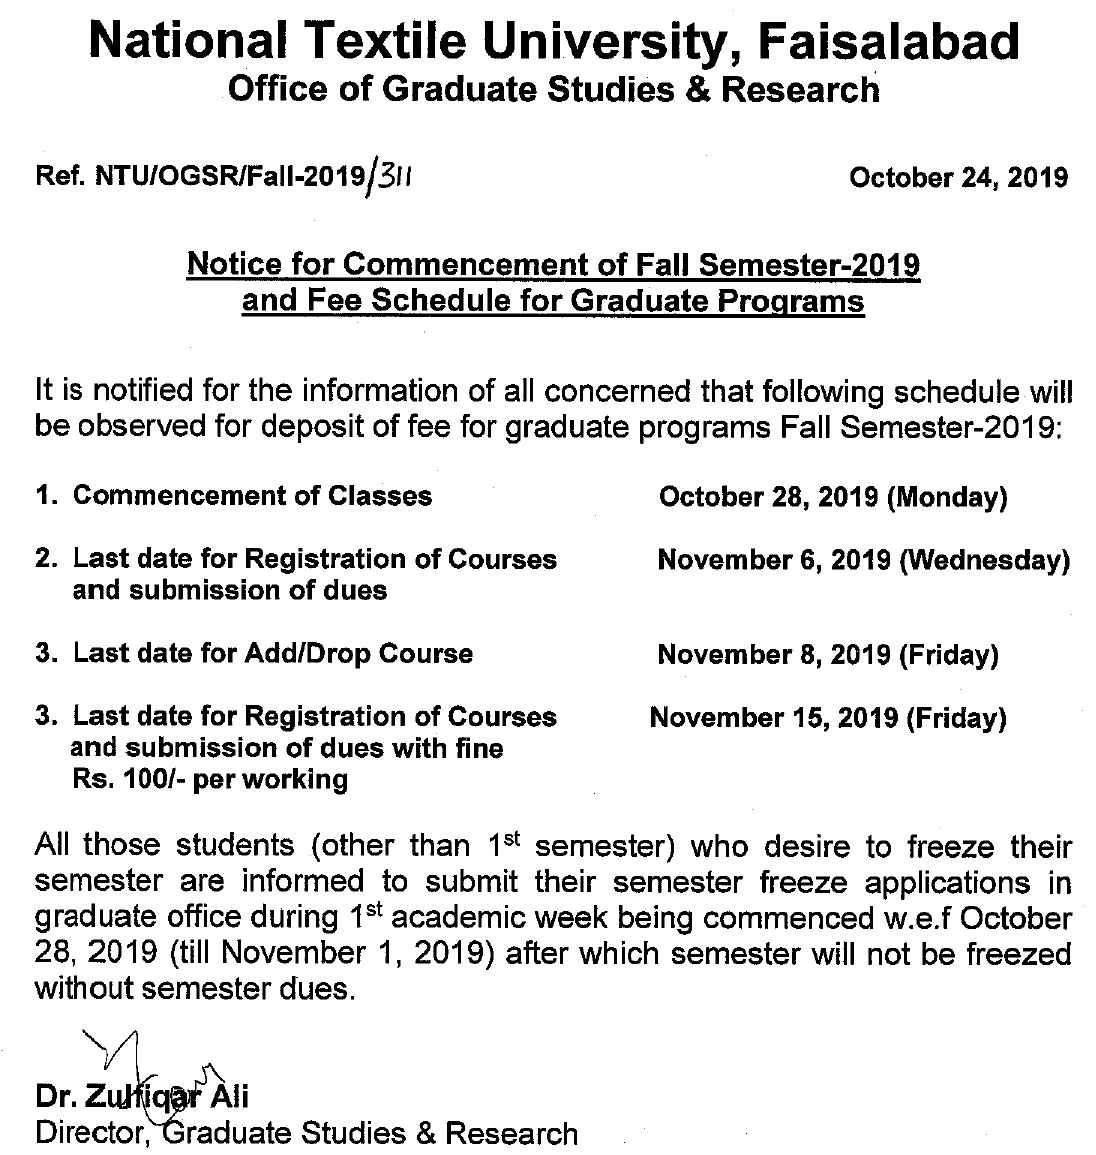 Notice For Commencement Of Fall Semester 2019 And Fee Schedule For